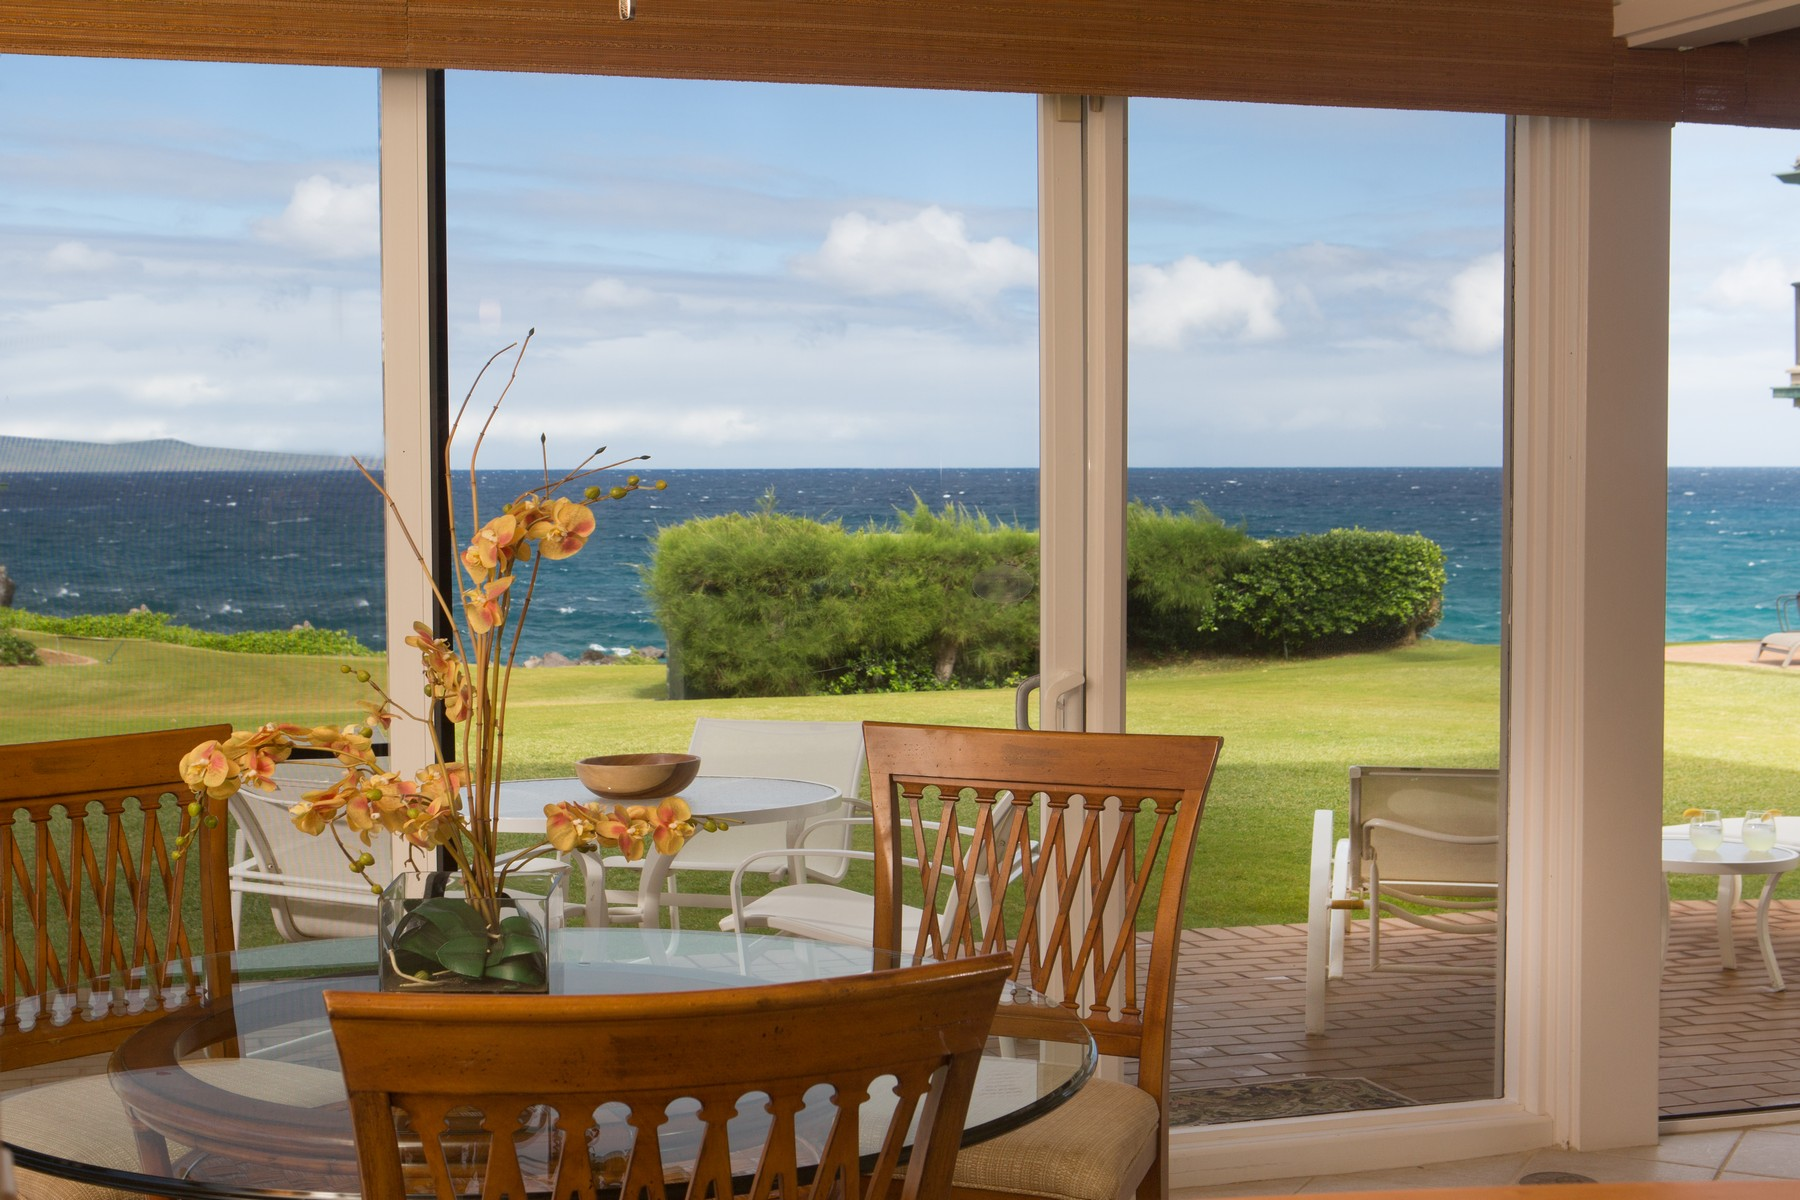 Condominium for Sale at Kapalua Bay Villas 28G1, 2 500 Bay Drive Kapalua Bay Villas 28G1, 2 Kapalua, Hawaii 96761 United States